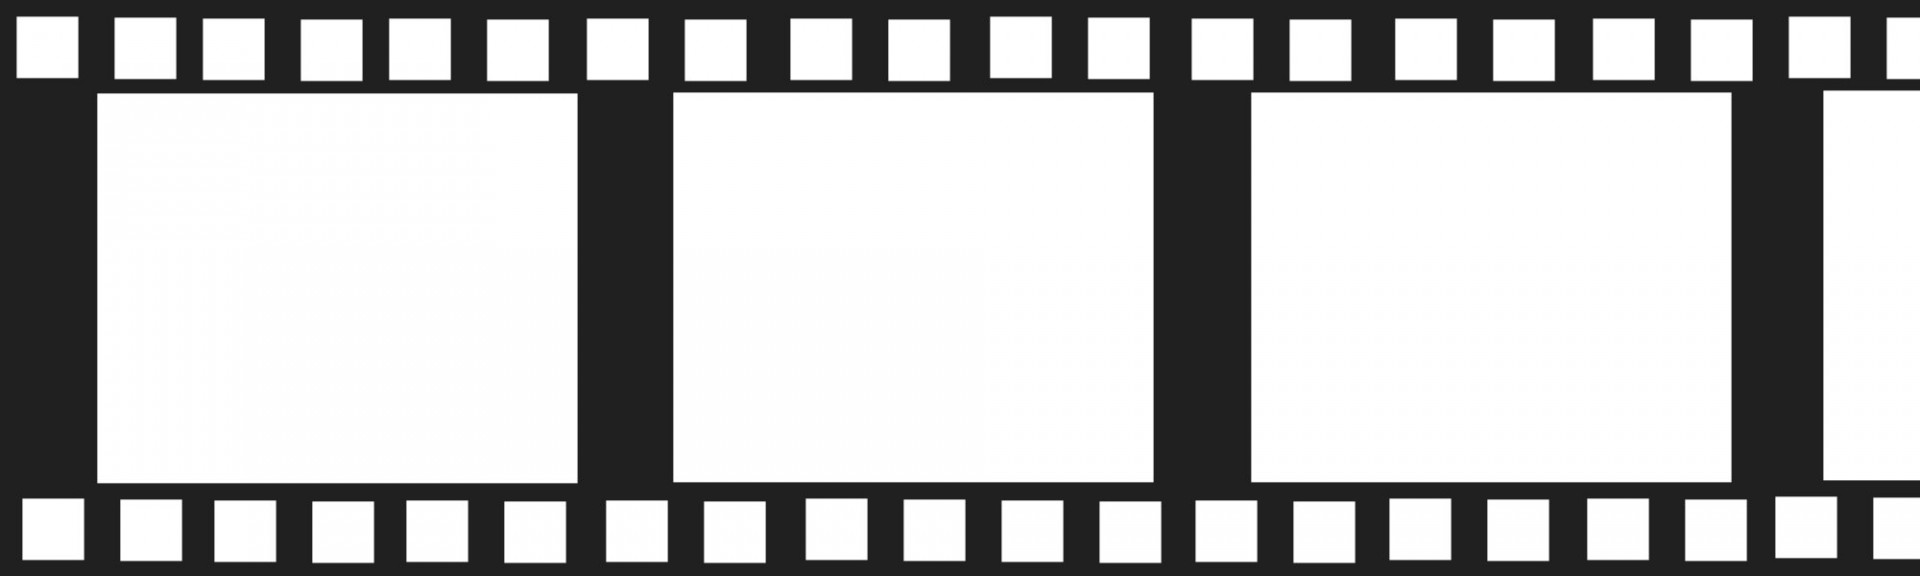 Free Film Strip Border Template.